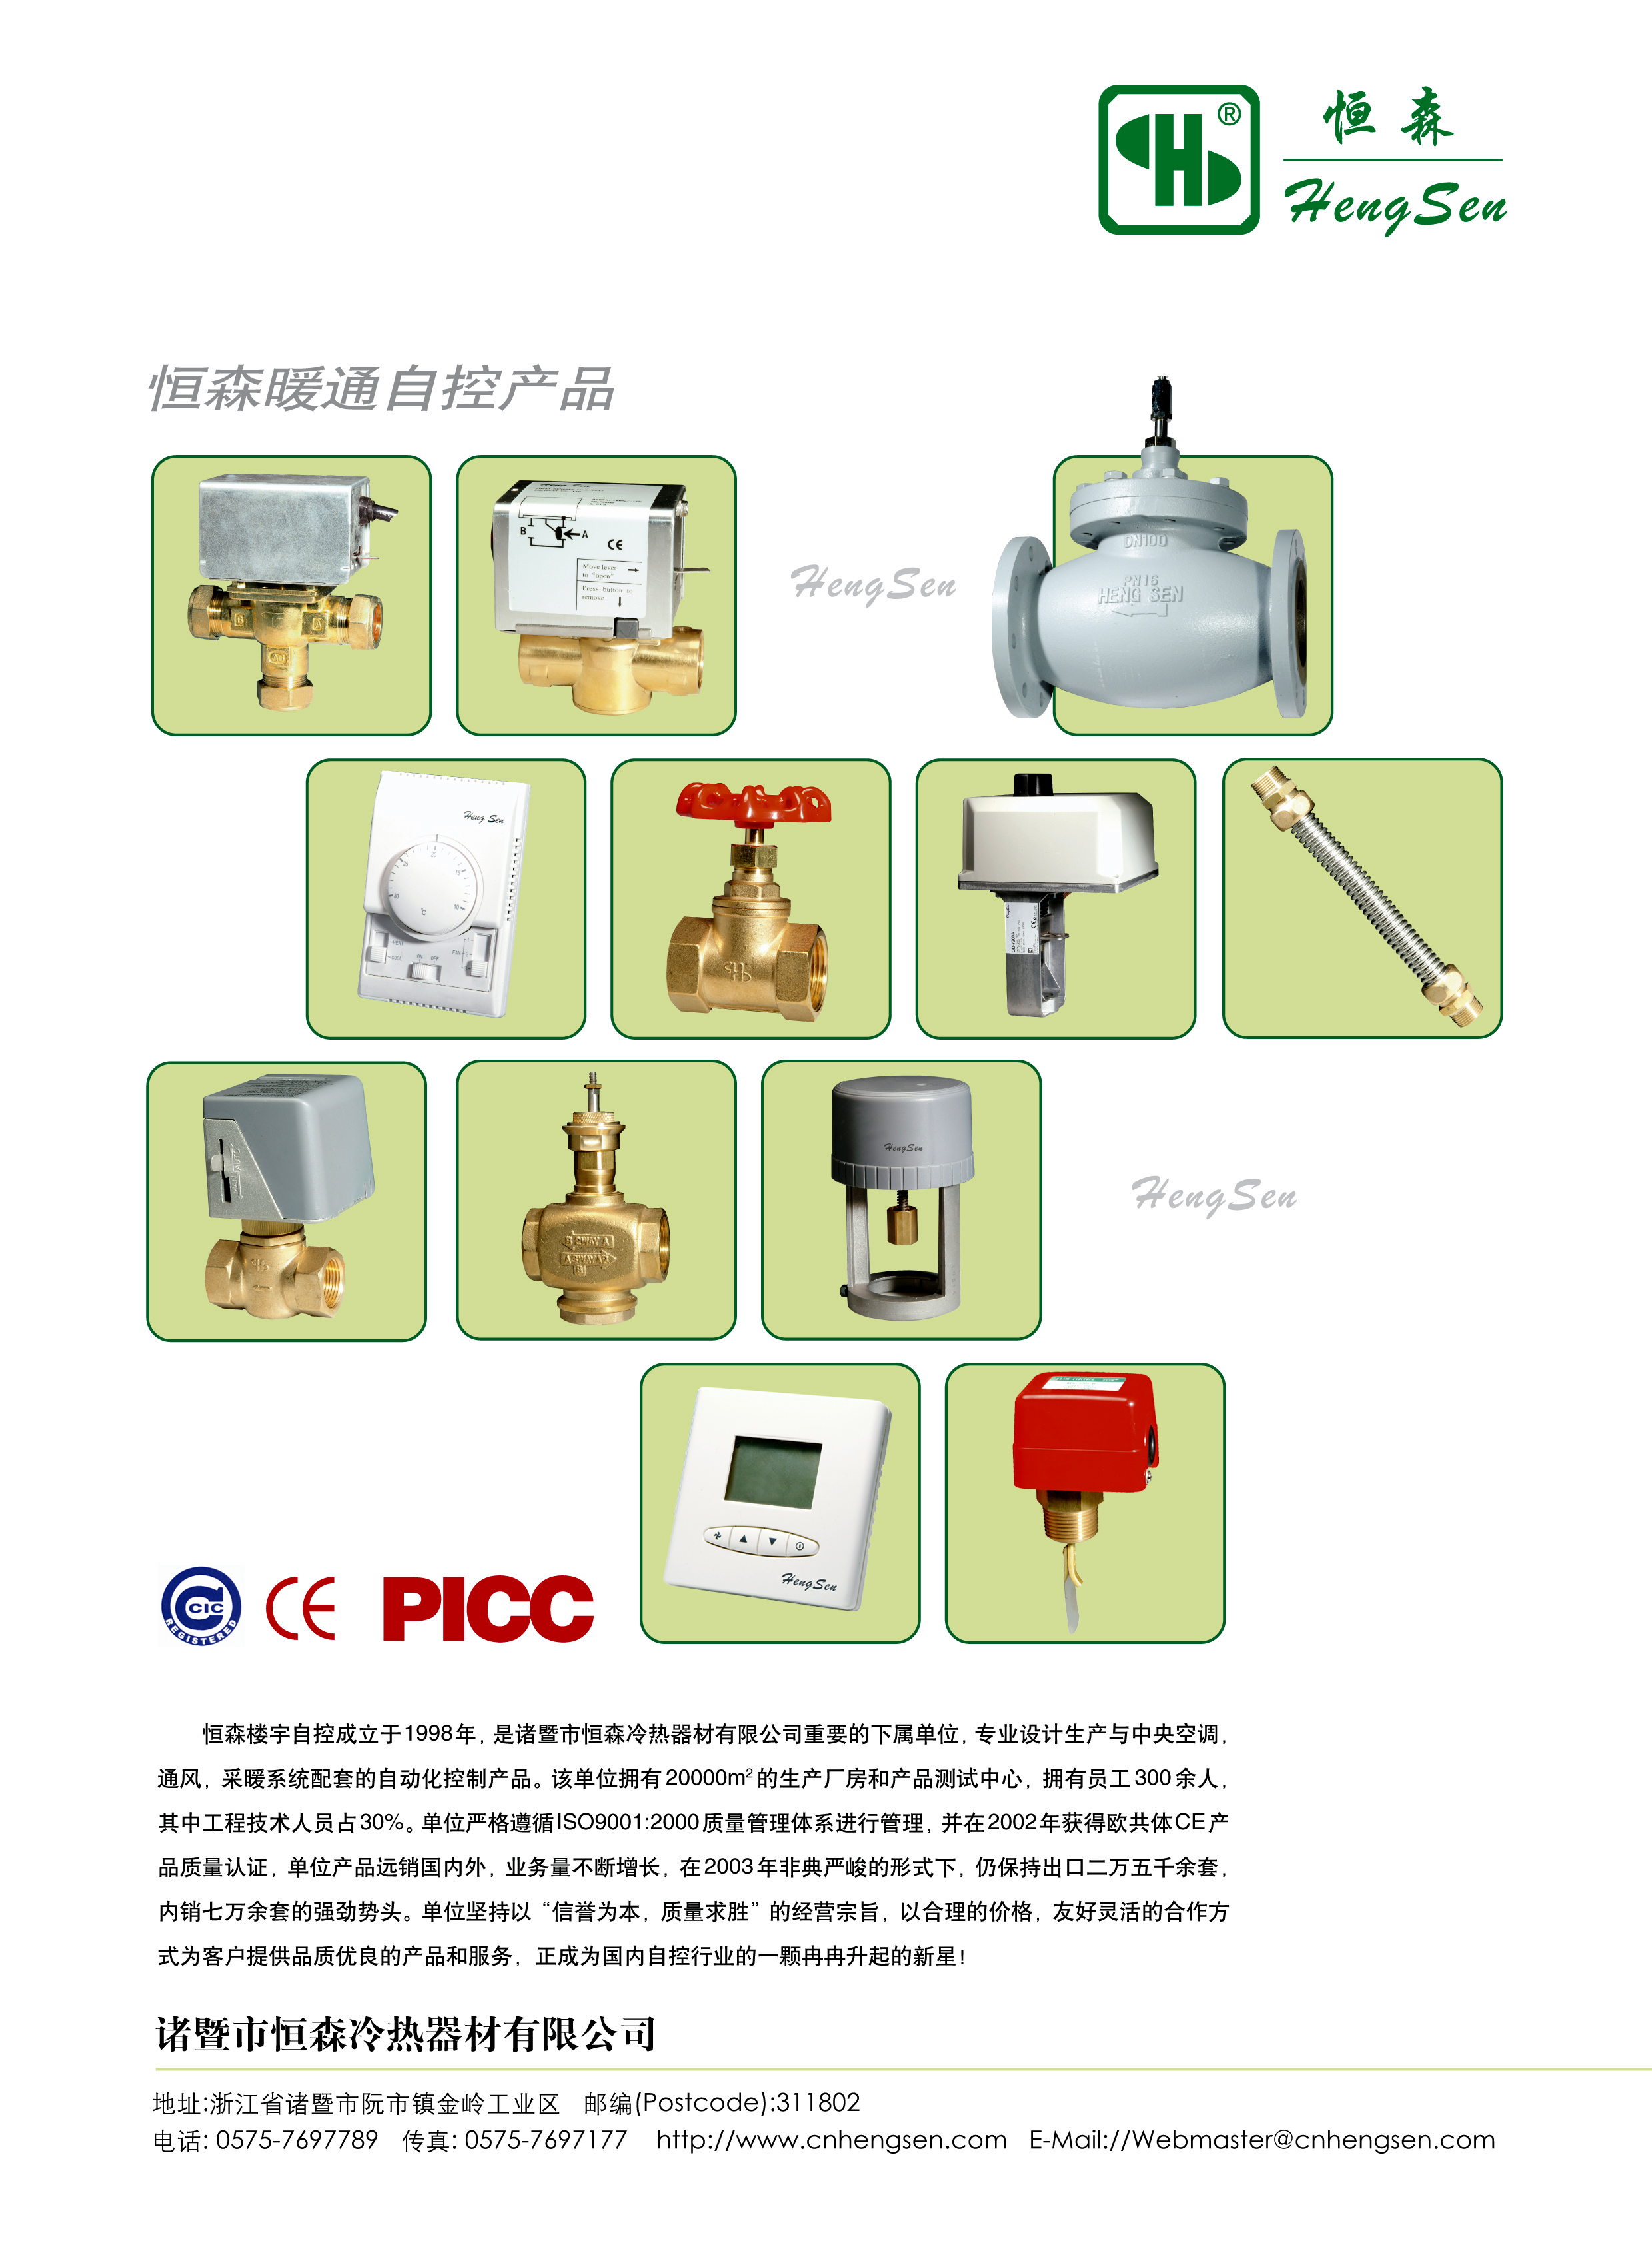 Zhejiang Hengsen Machine-Electrical Co., Ltd